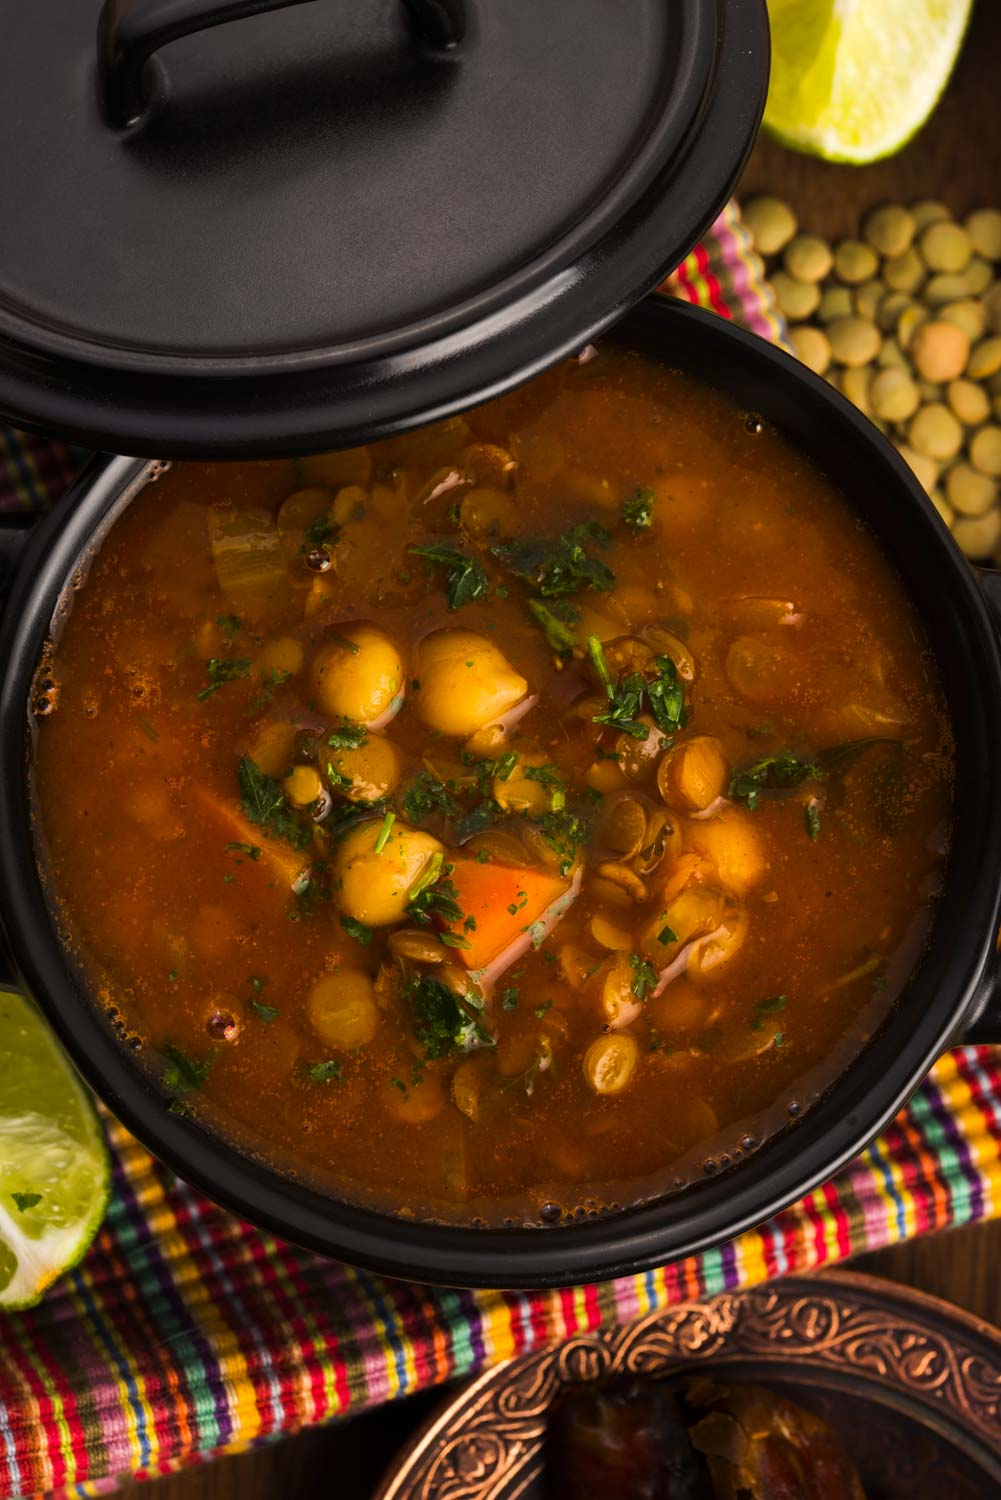 Moroccan traditional soup - harira the traditional Berber soup of Morocco